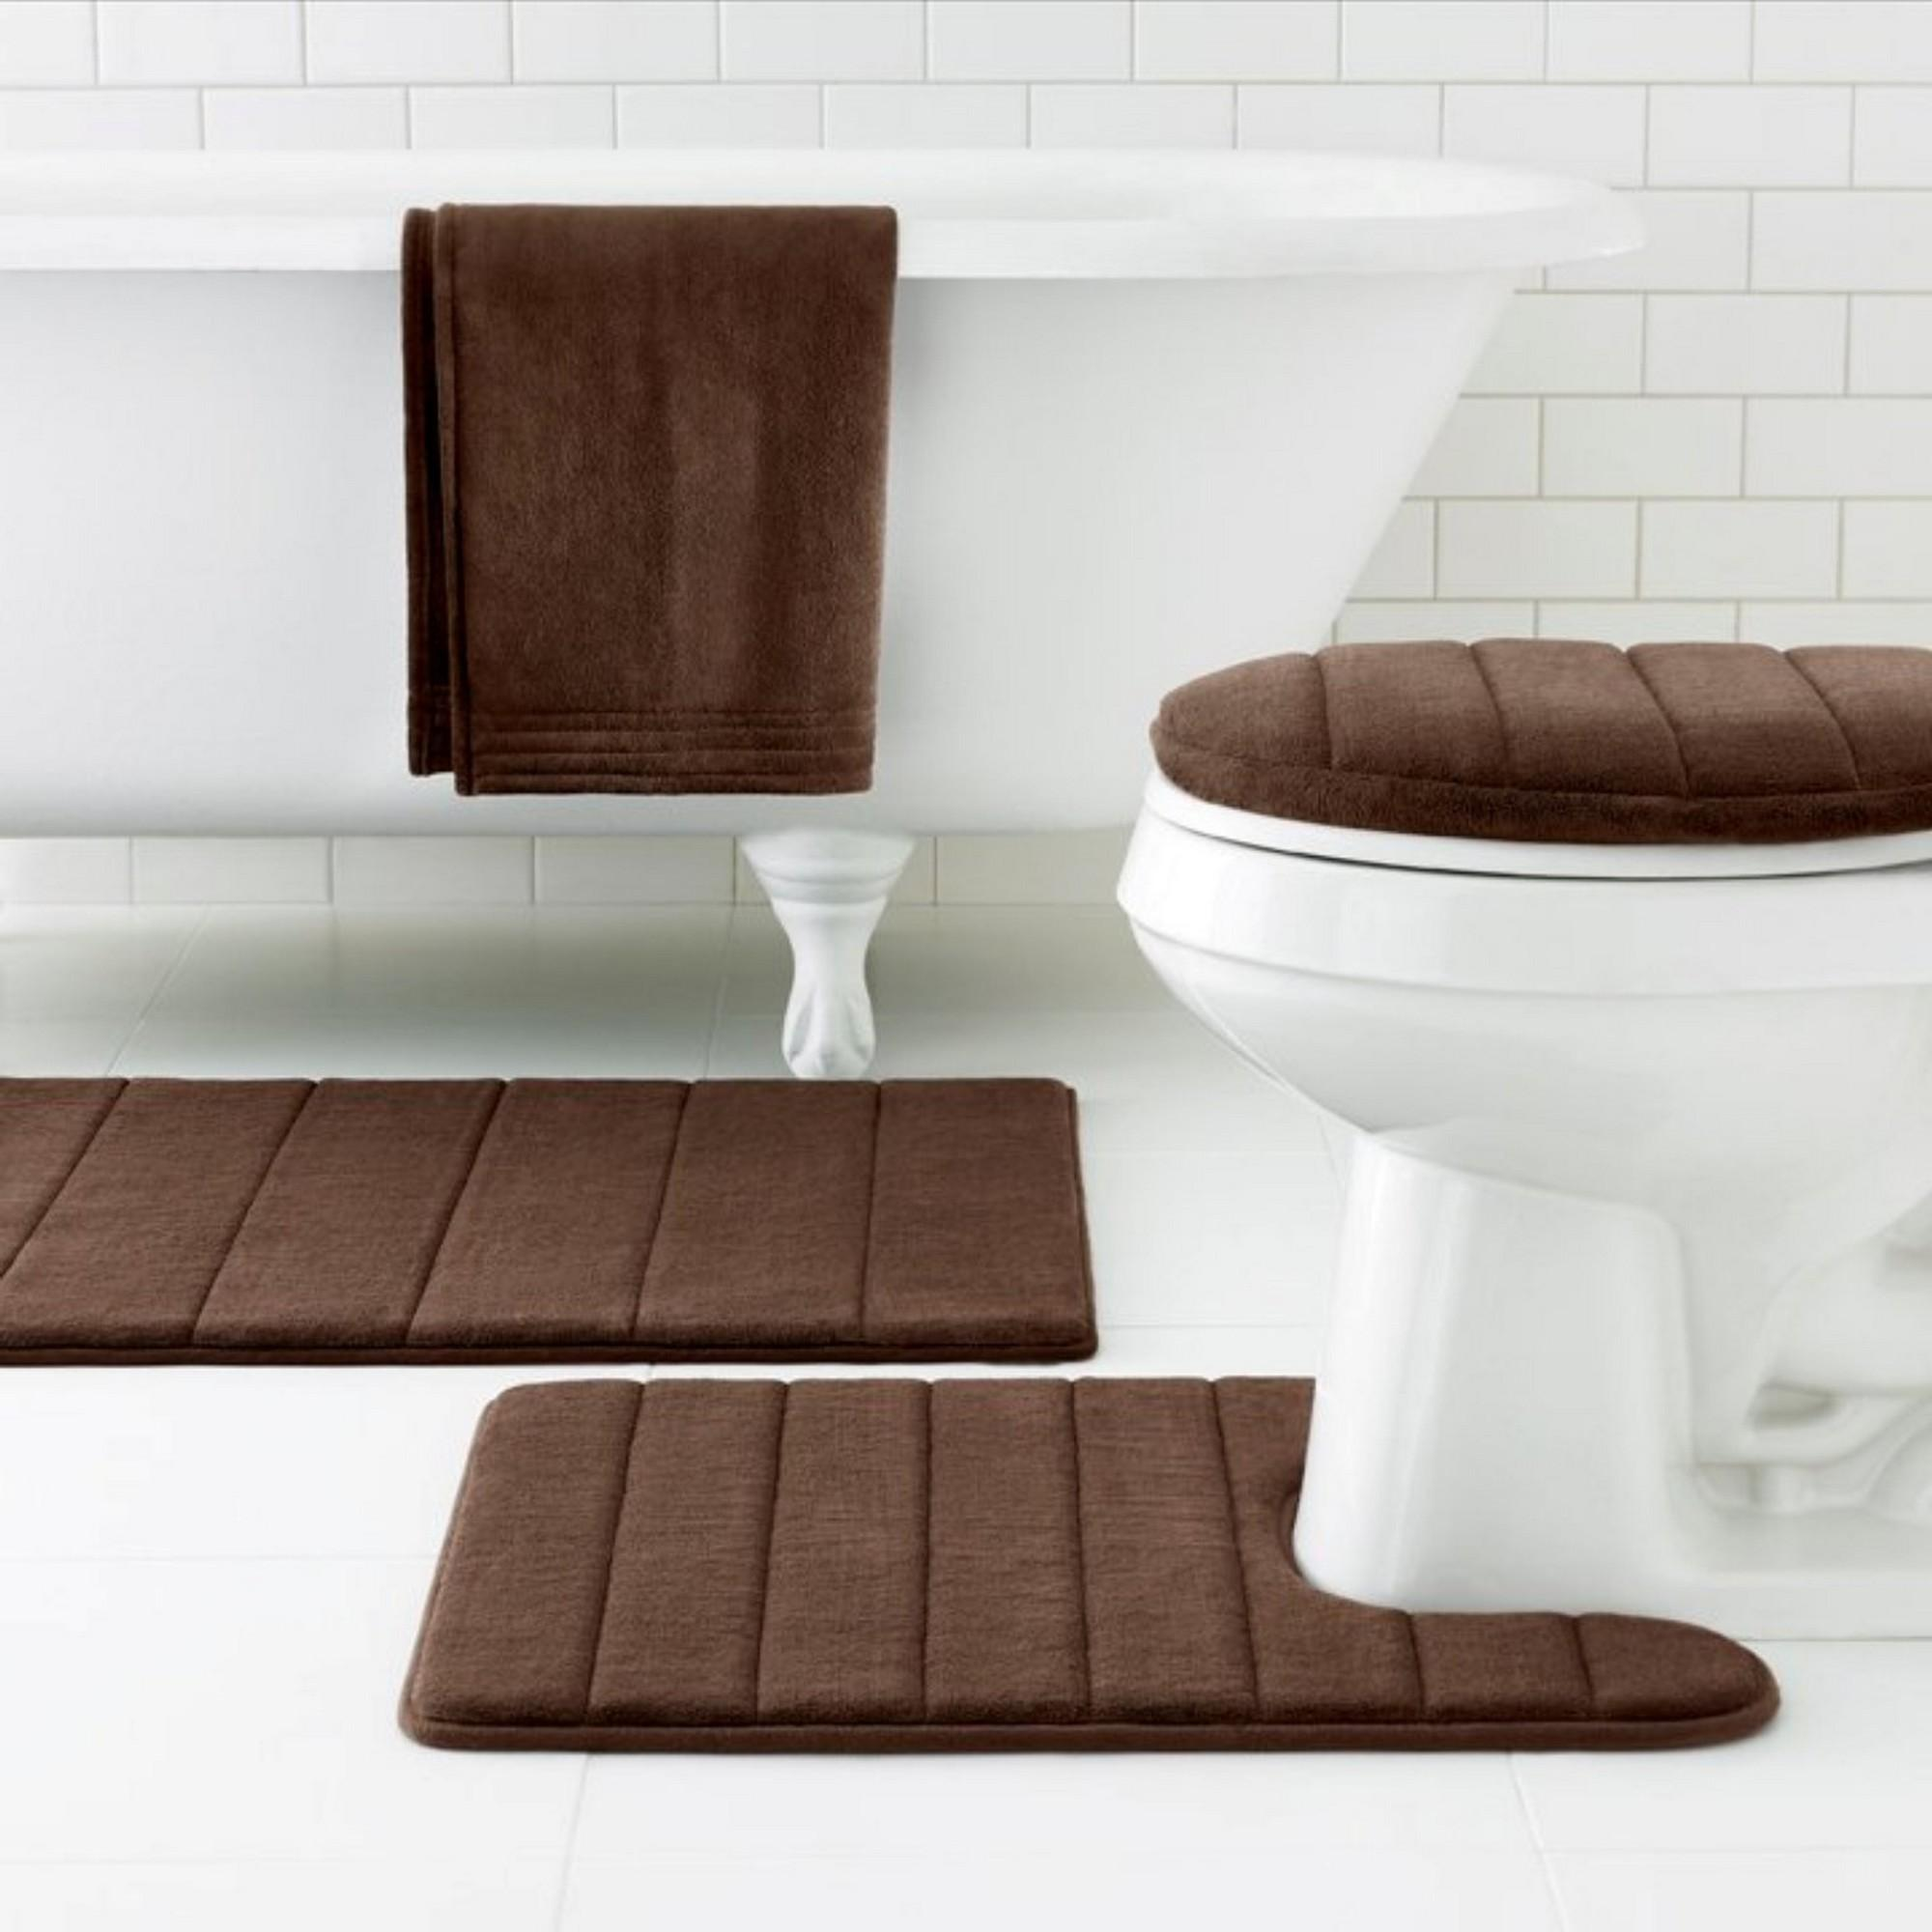 Brown Bath Rugs Ideas Contemporary Bathroom Design